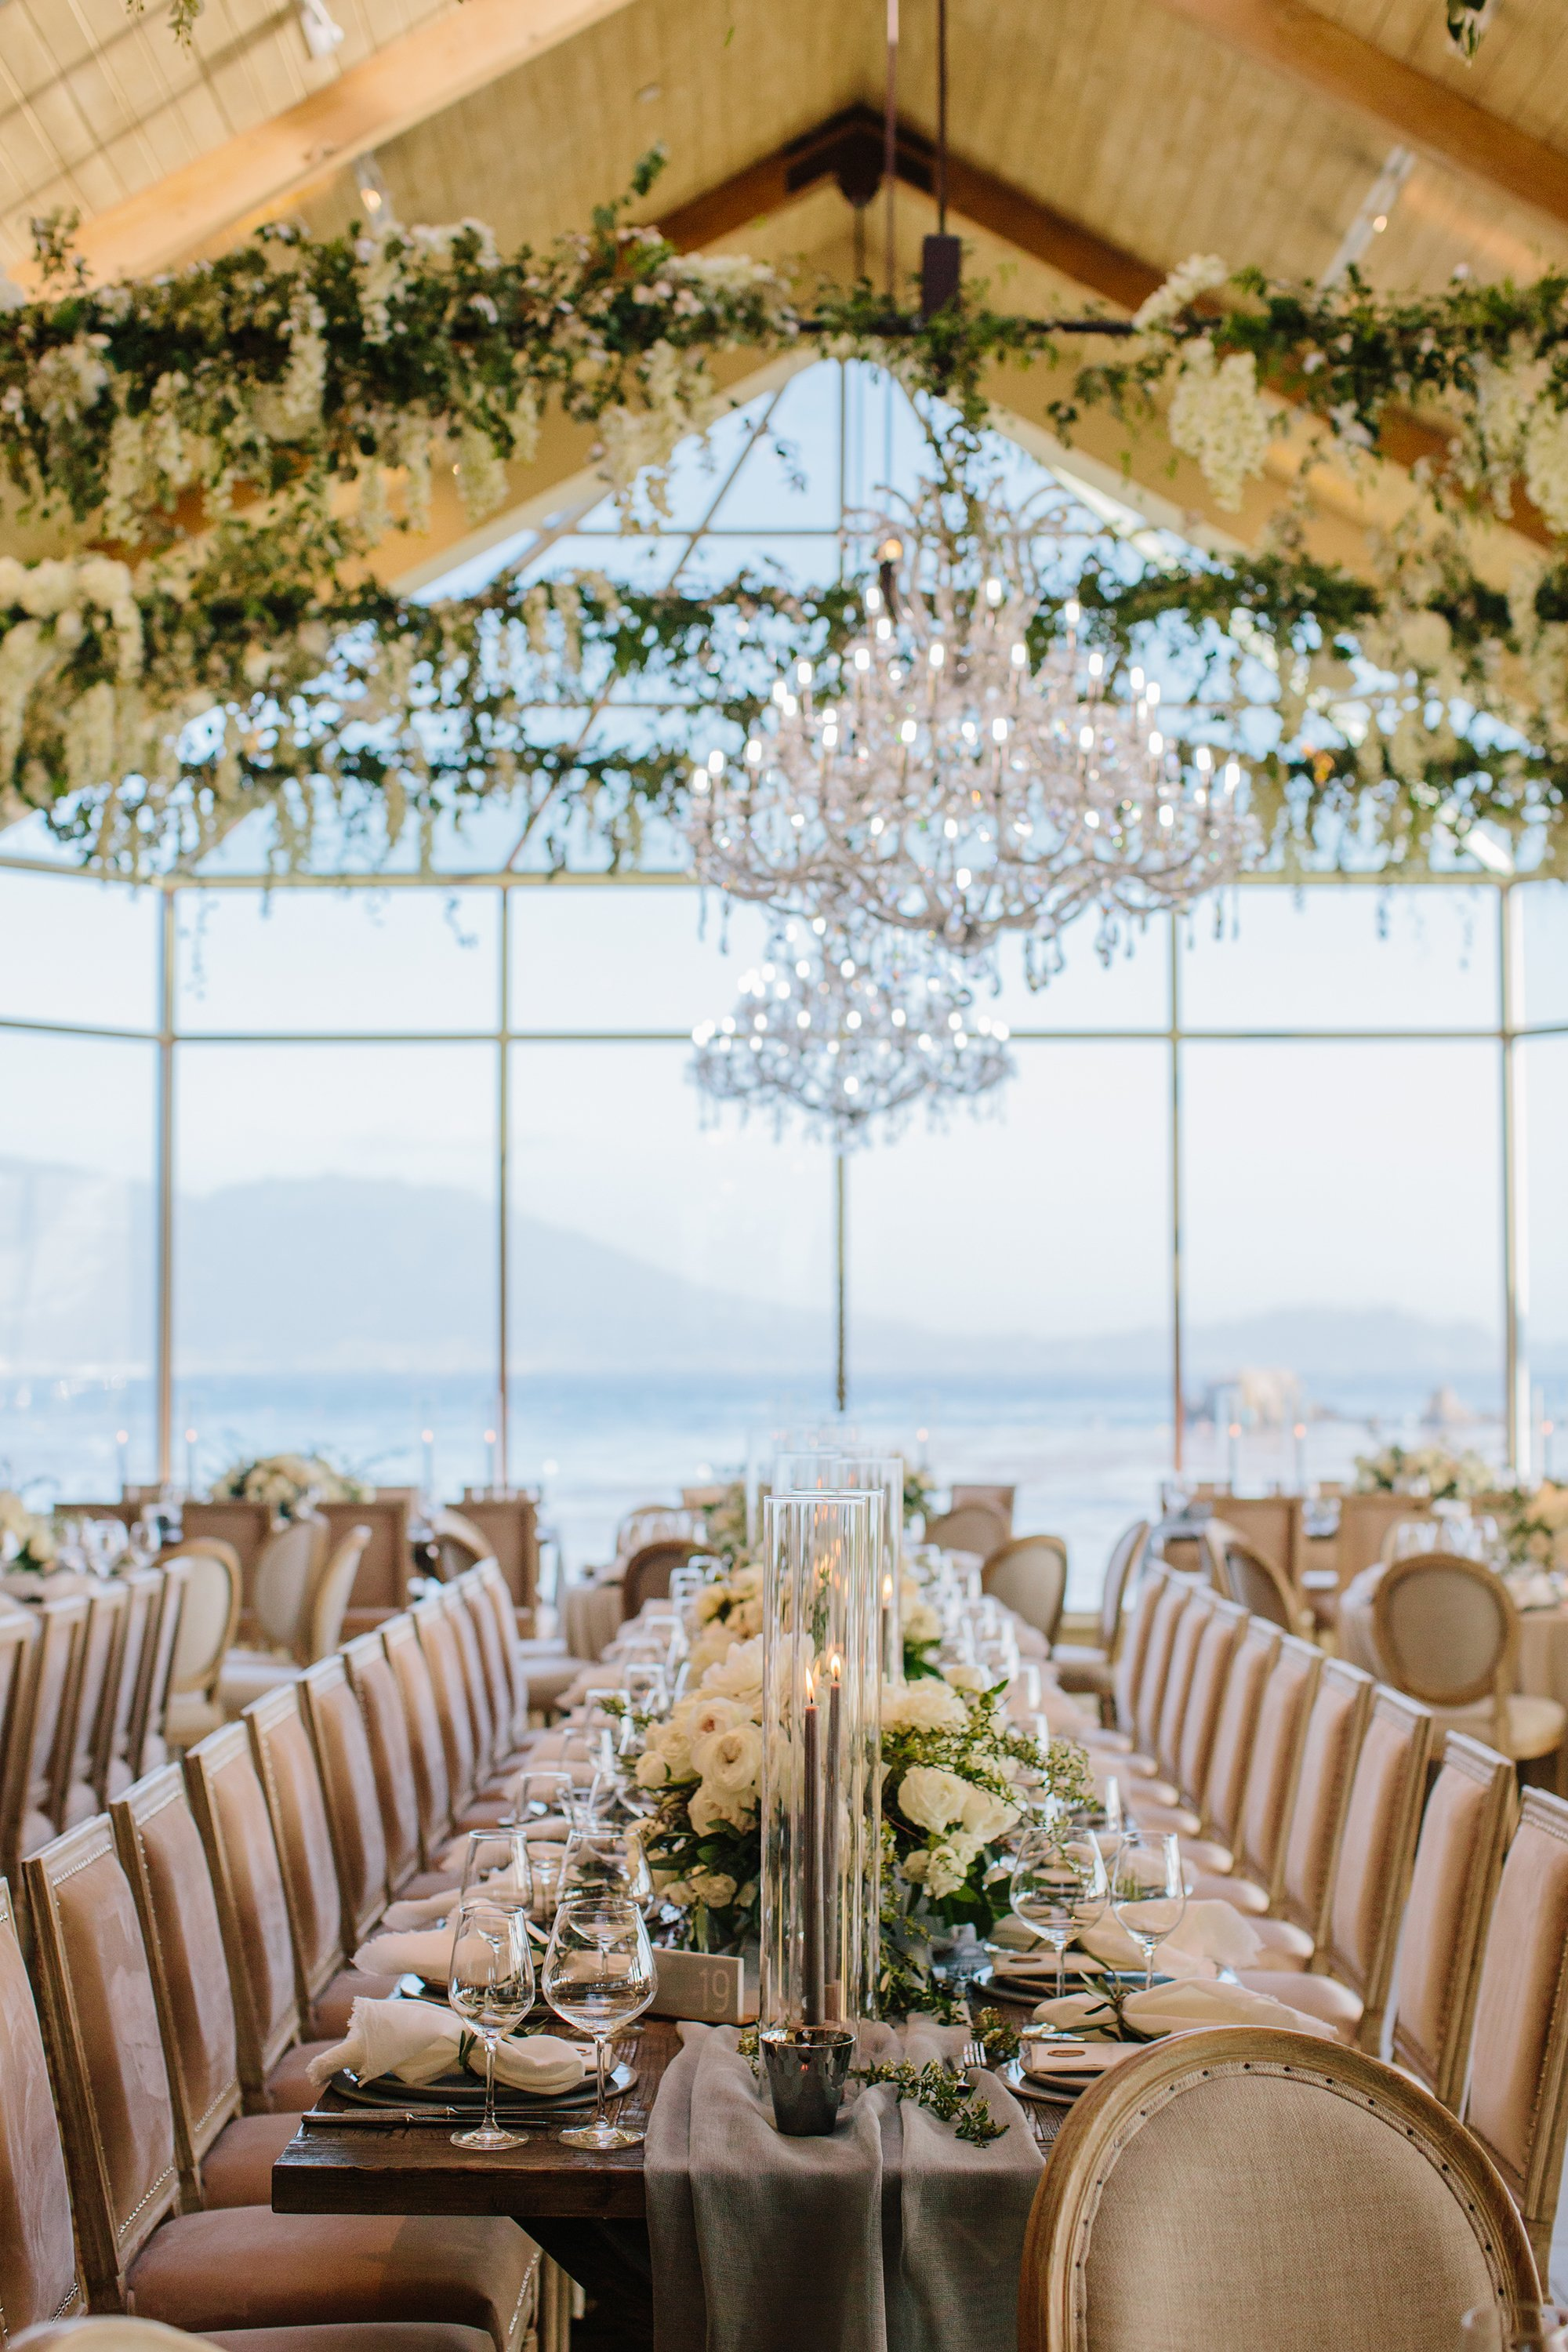 Fl And Event Design Is A Full Service Production Division Within Pebble Beach Company Working Closely With Each Client We Provide Creative